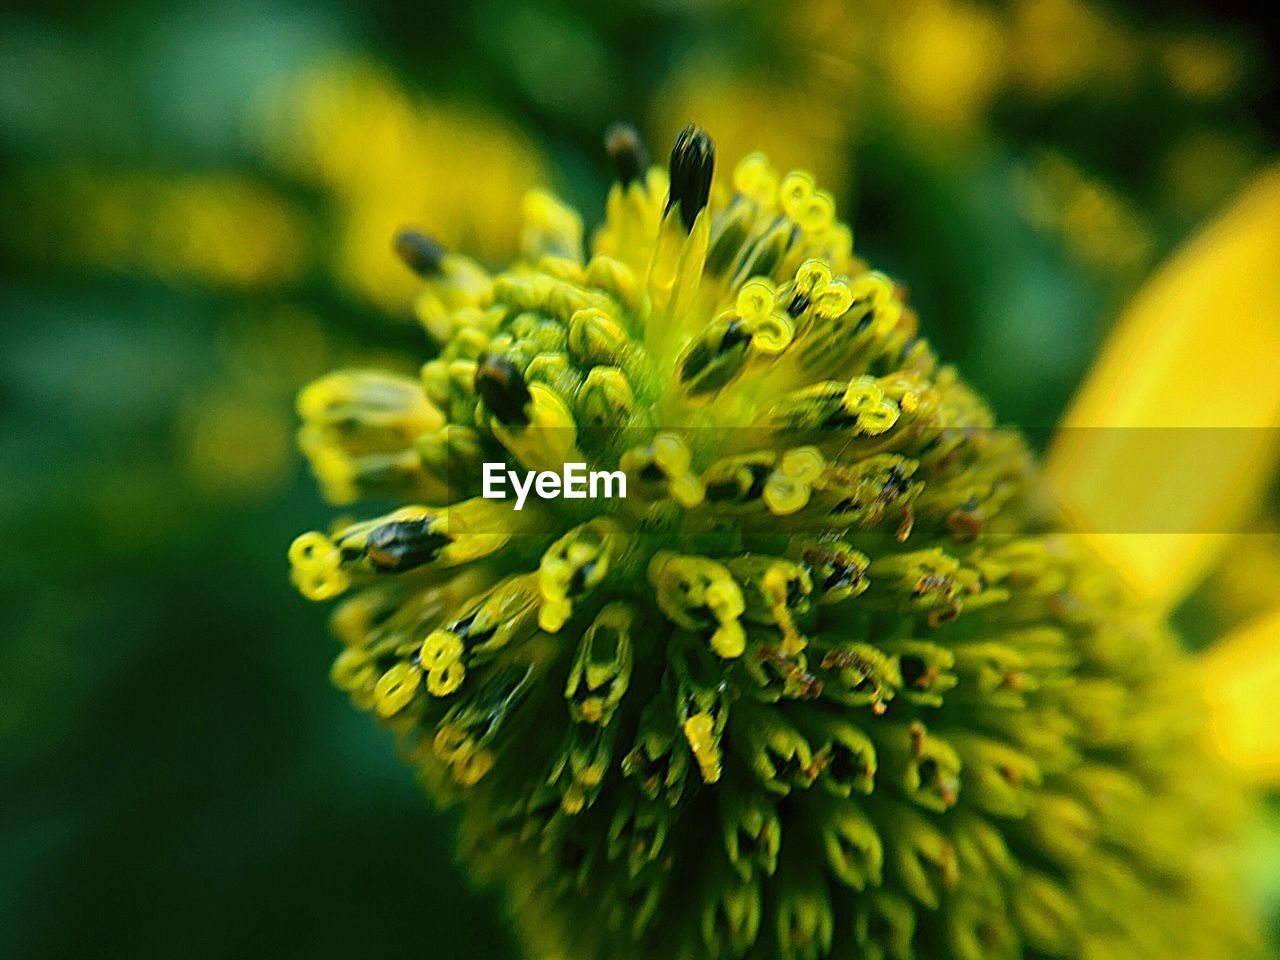 flower, flowering plant, beauty in nature, vulnerability, fragility, freshness, yellow, plant, close-up, flower head, growth, inflorescence, petal, selective focus, day, nature, focus on foreground, pollen, no people, outdoors